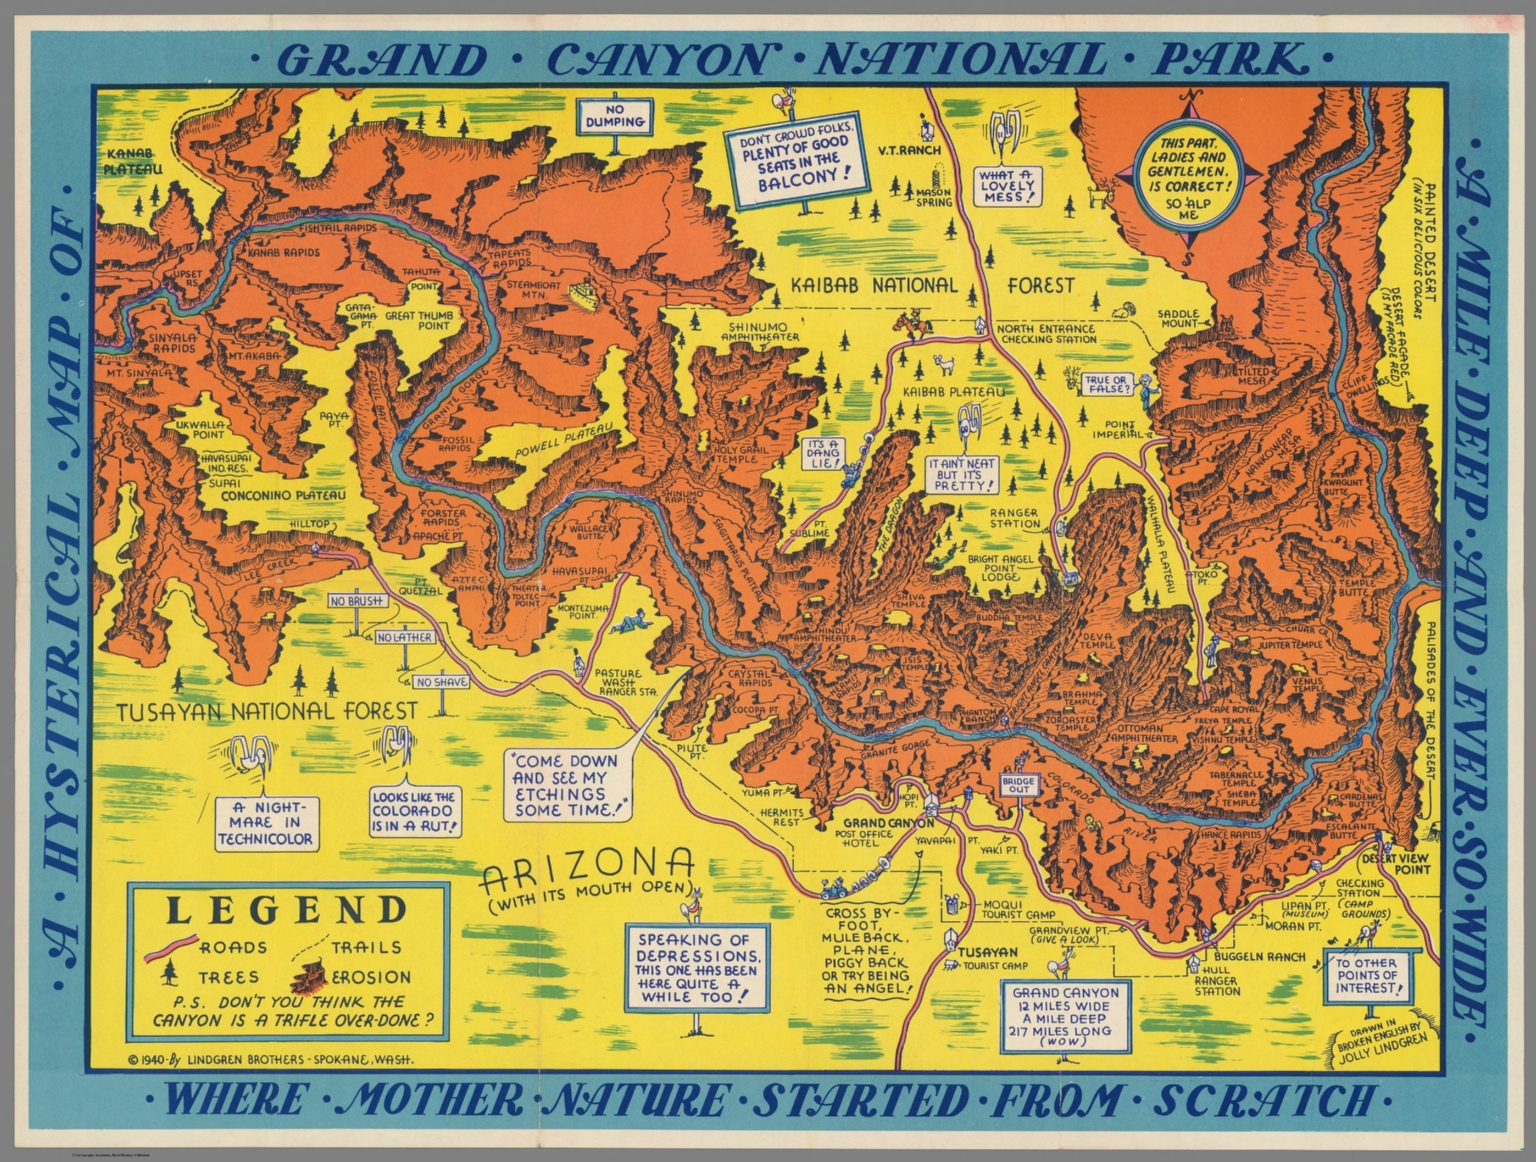 A Hysterical Map of the Grand Canyon National Park - David Rumsey ...